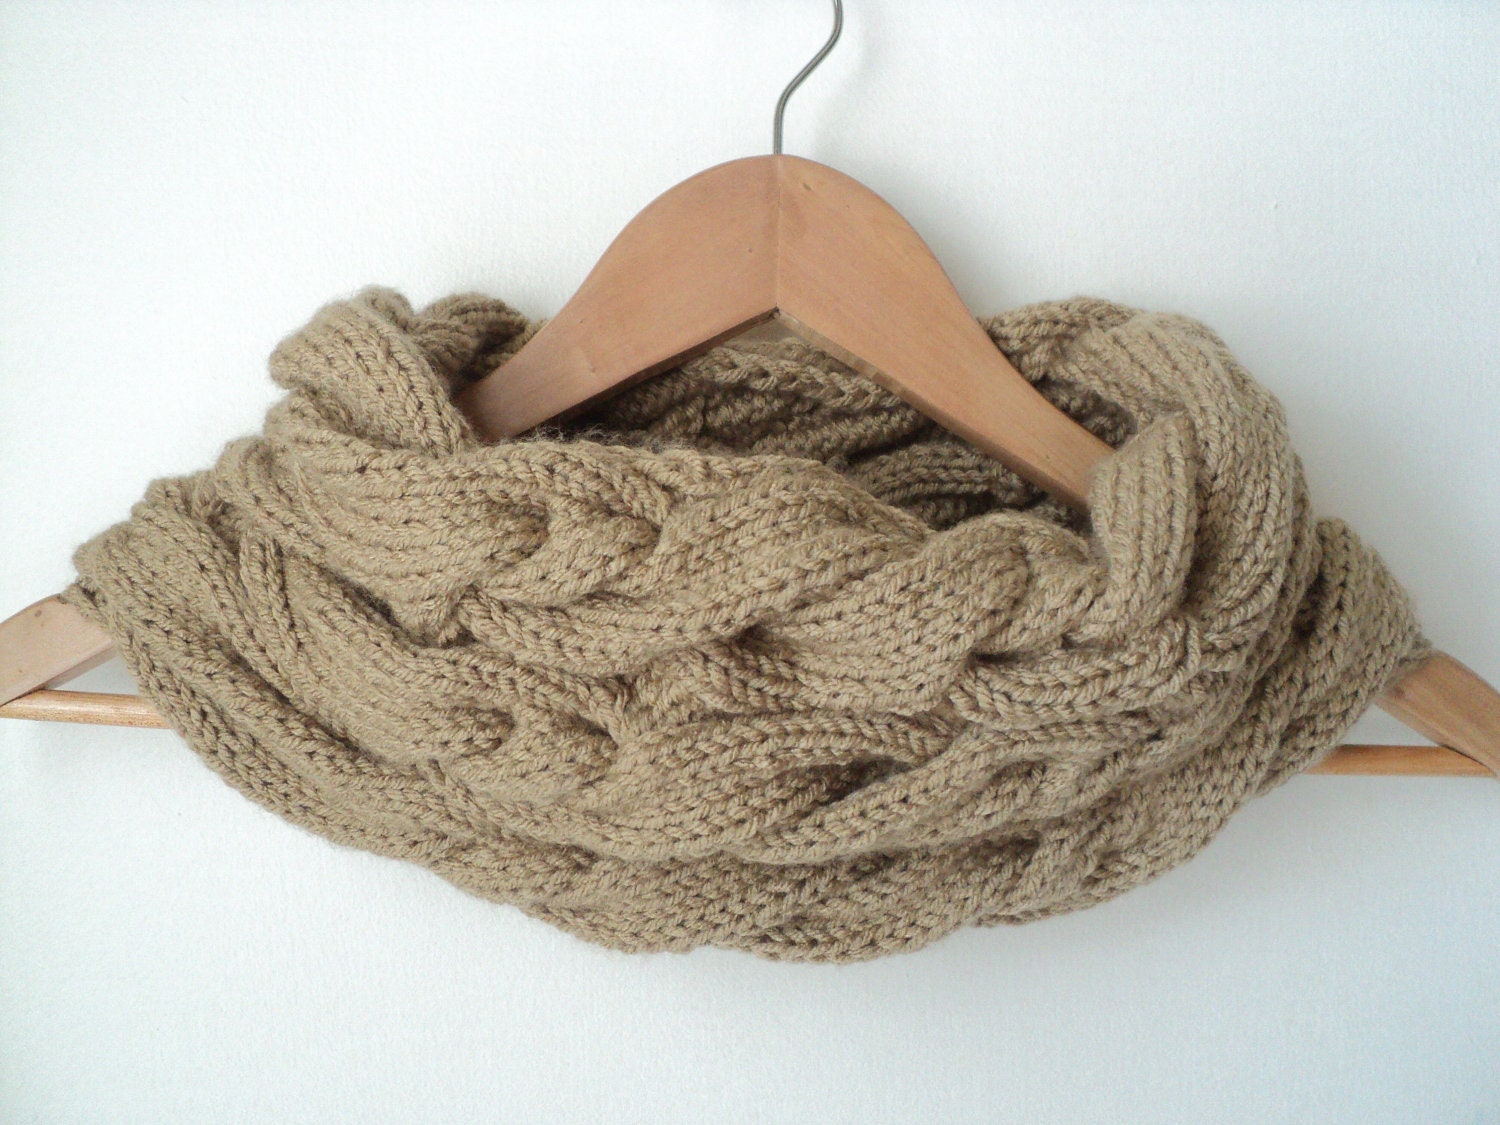 Cabled Cowl Knitting Pattern : 2 KNIT PATTERNS Triple Cable Cowl and by Lifeinsmallspaces